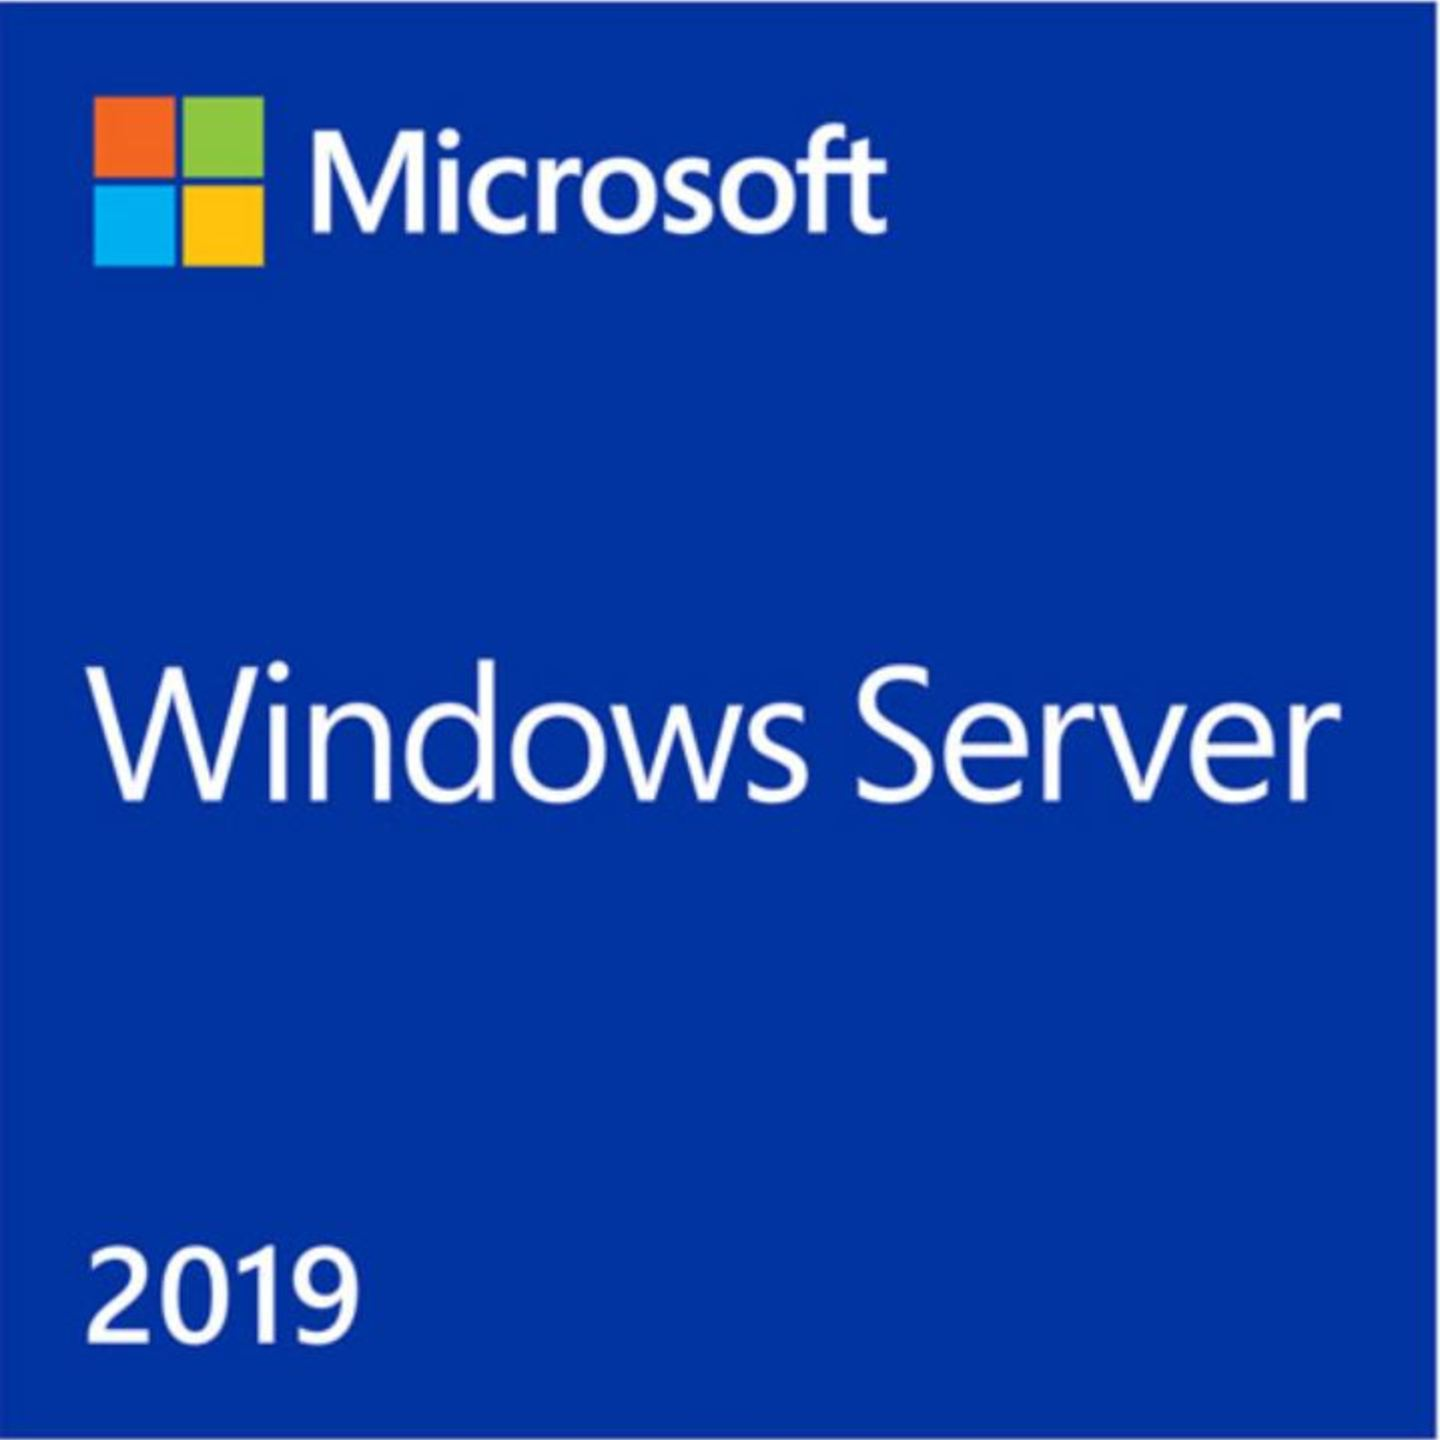 Windows Server Standard 2019 bundled with 5 CALs